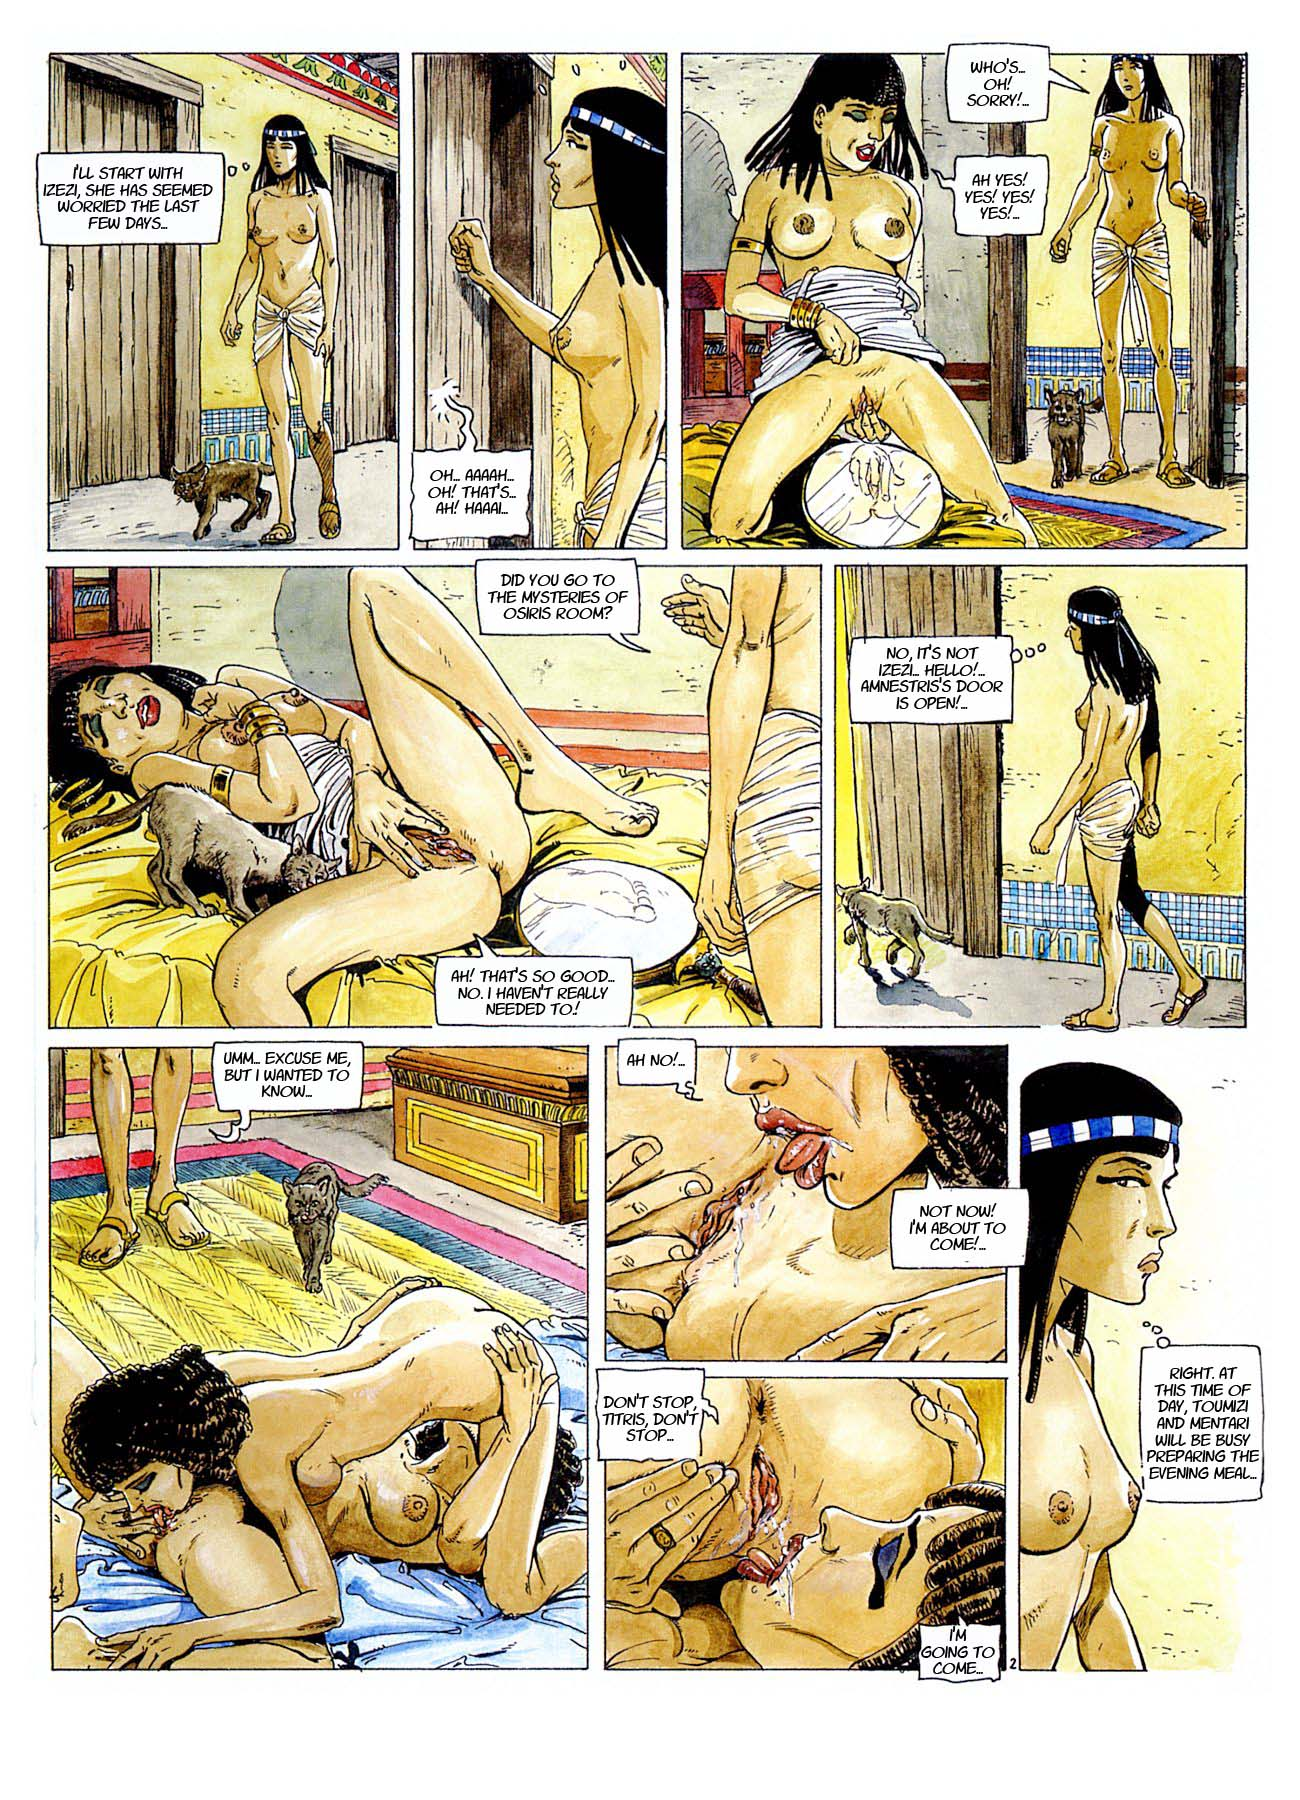 erotic comics norwegian sex